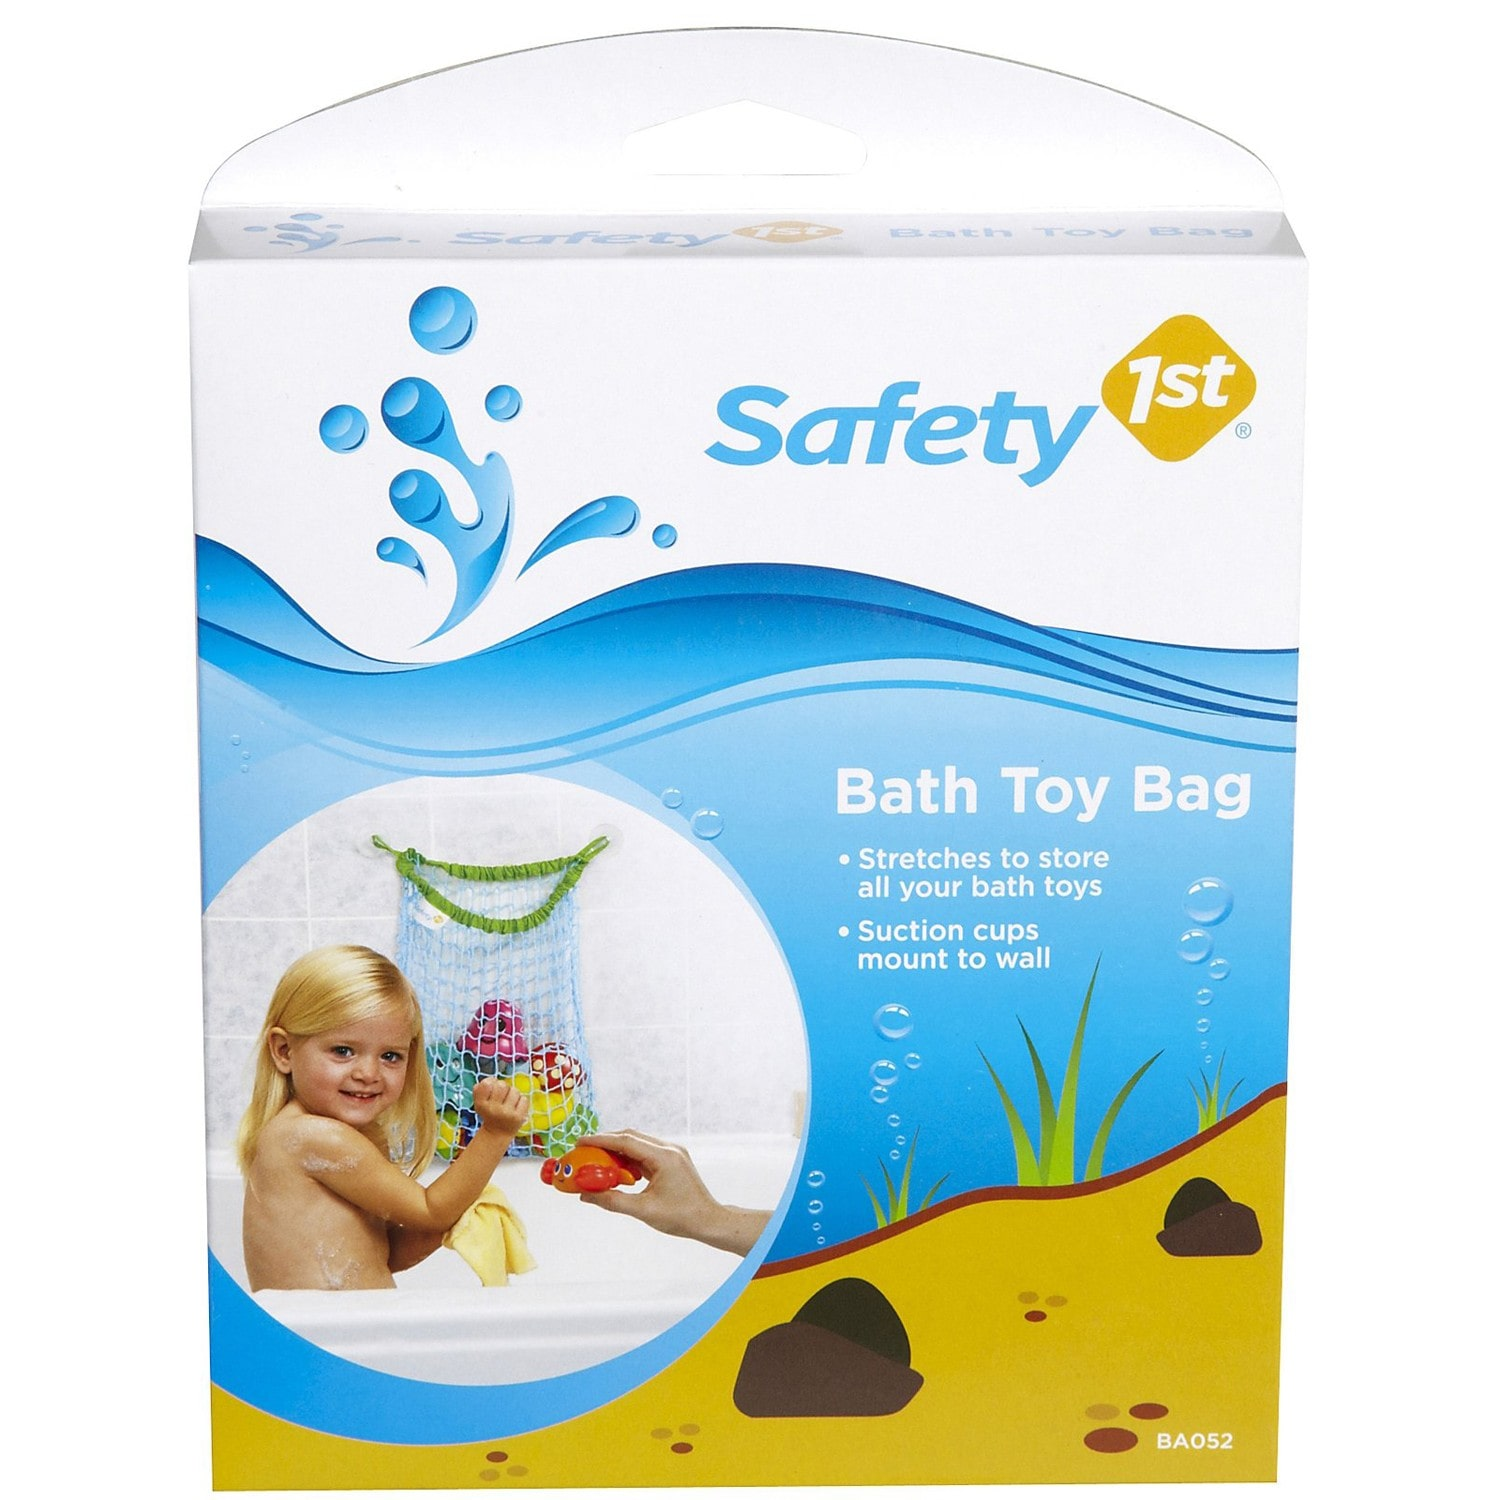 Safety 1st Bath Toy Bag - Walmart.com